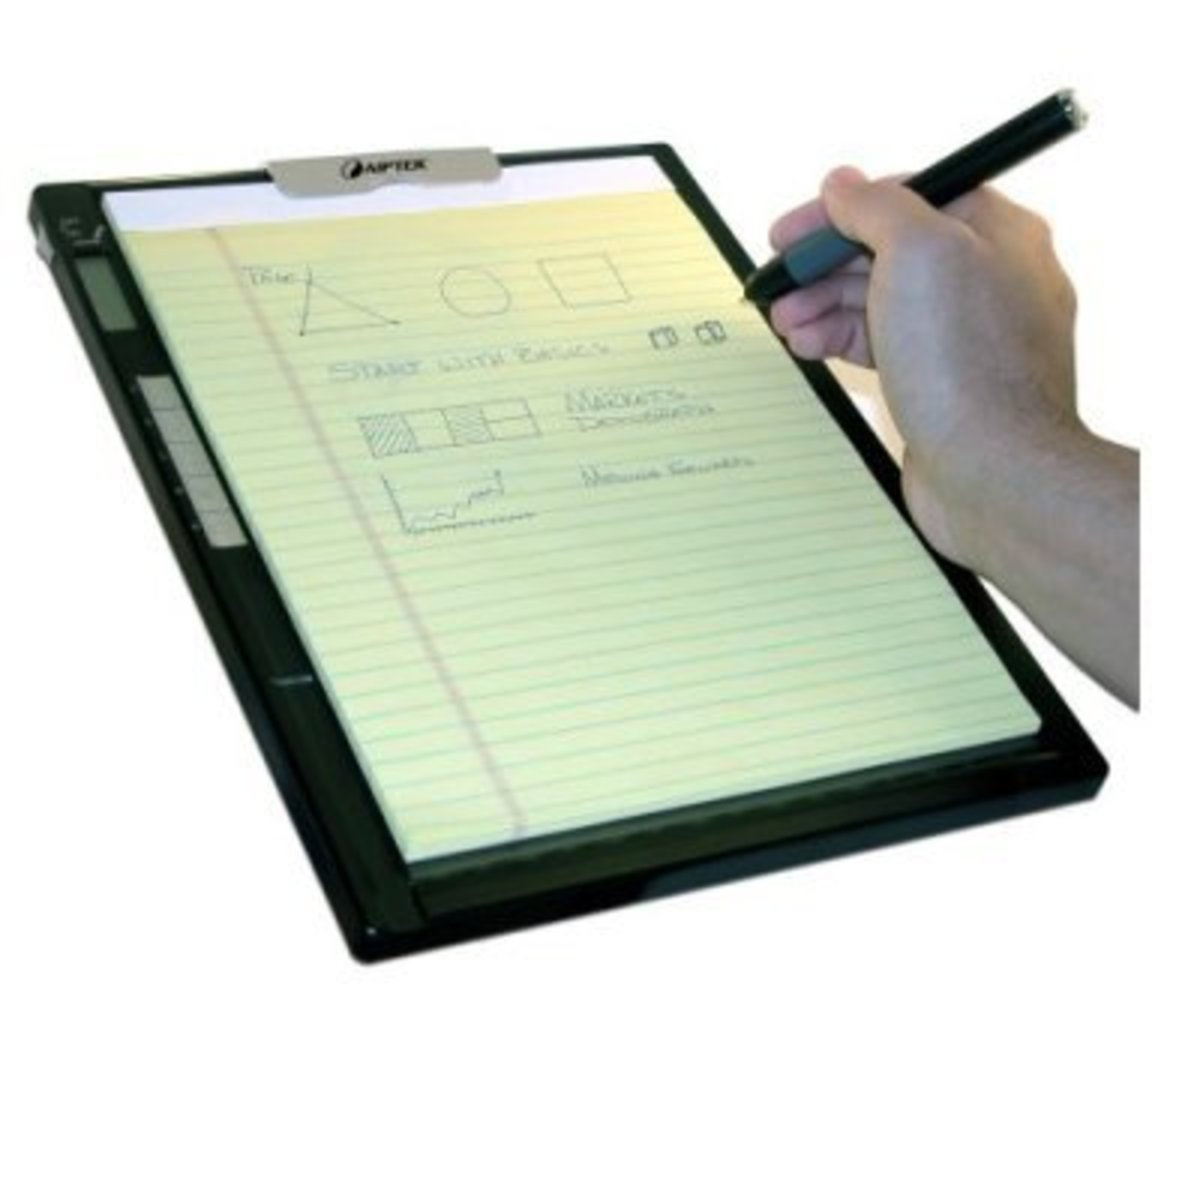 digital-notepads---how-do-they-compare-to-tablet-pcs